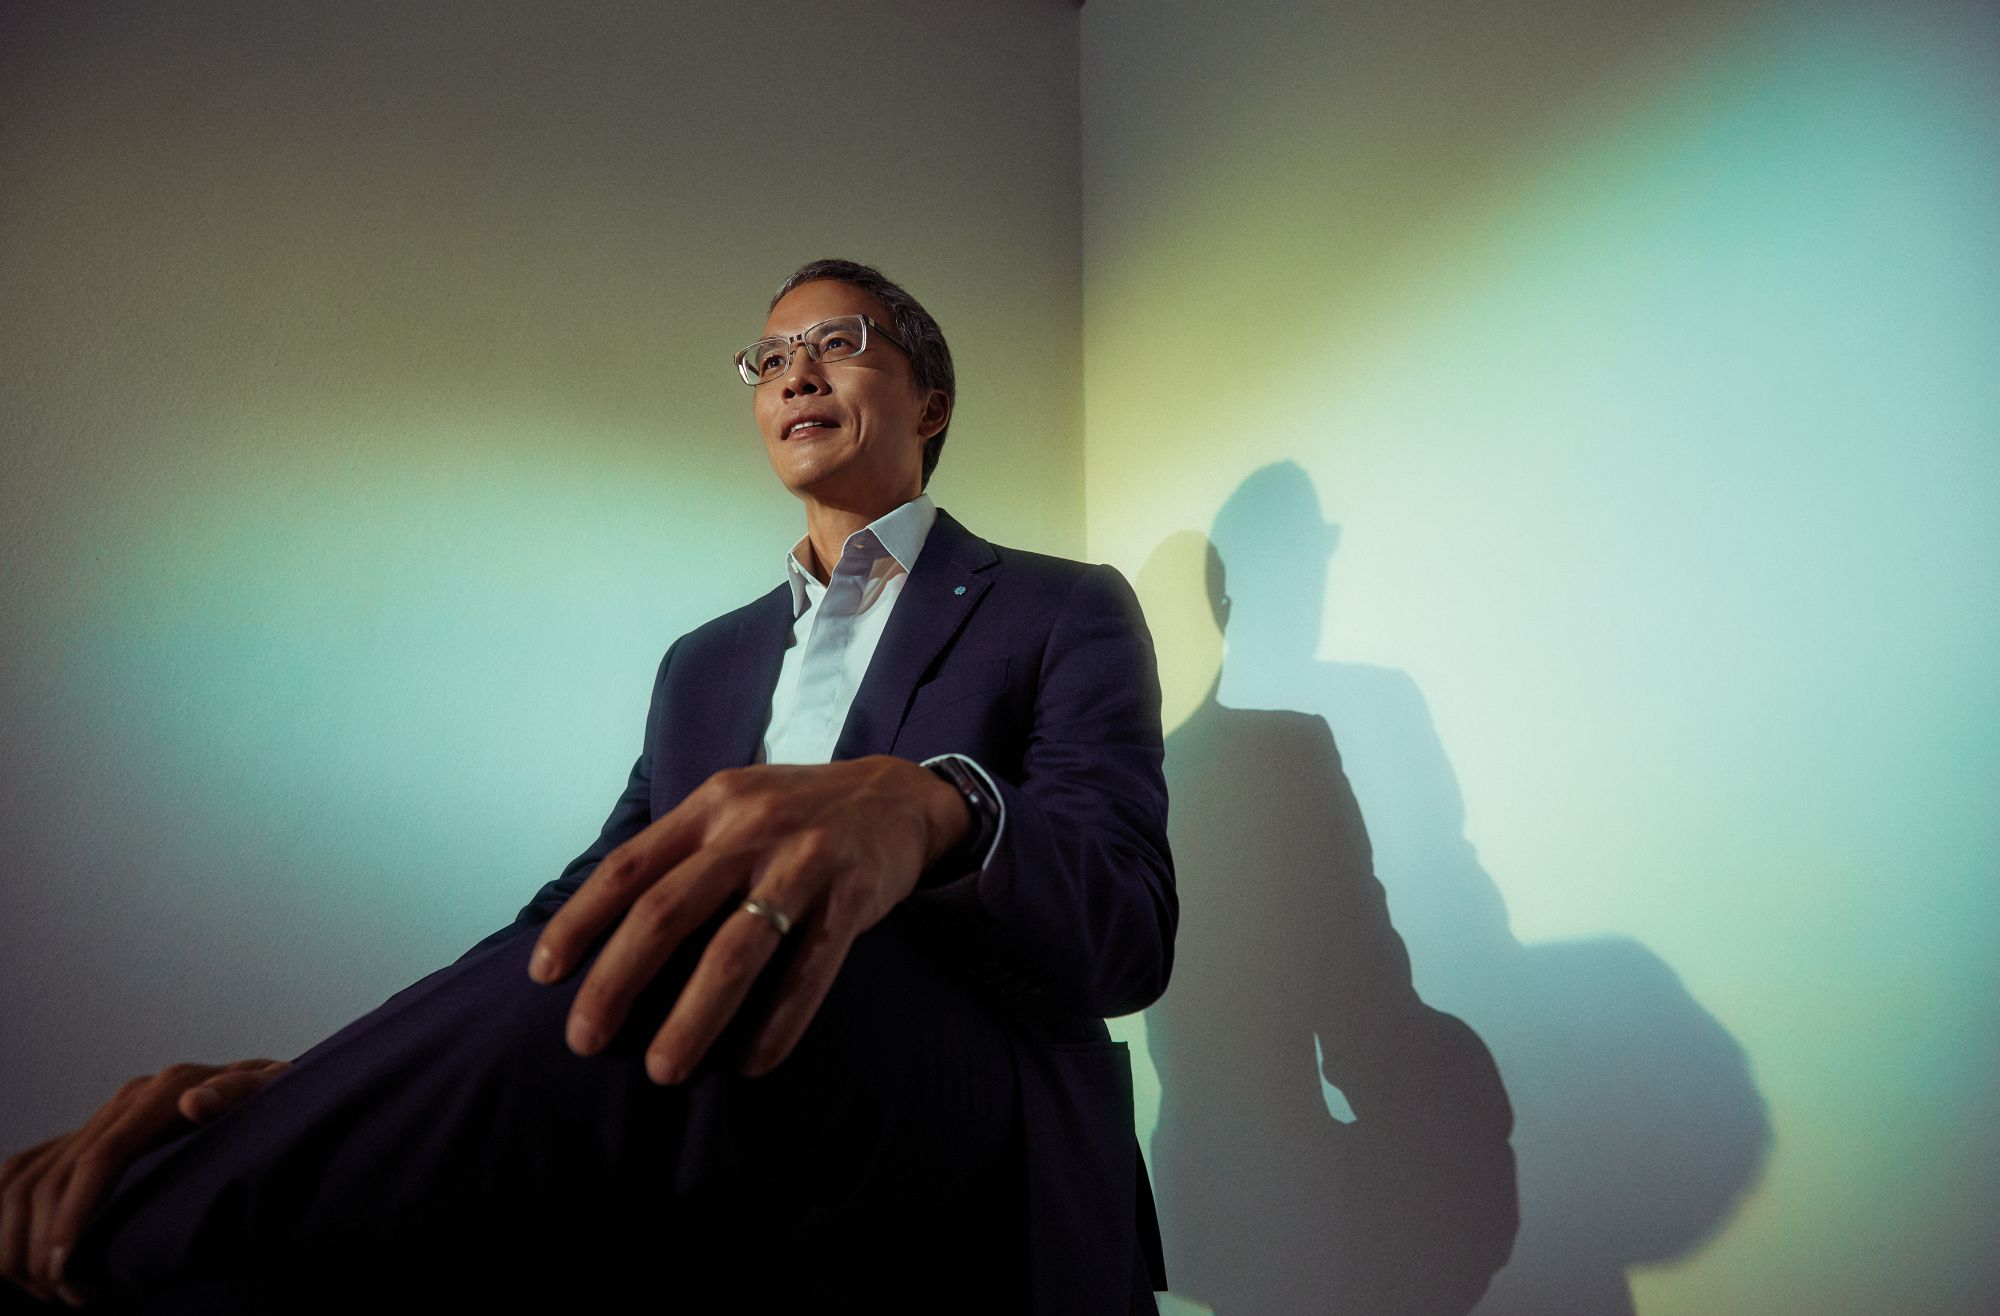 Asia's Most Influential: Laurence Lien, CEO of Asia Philanthropy Circle and Chairman of Lien Foundation